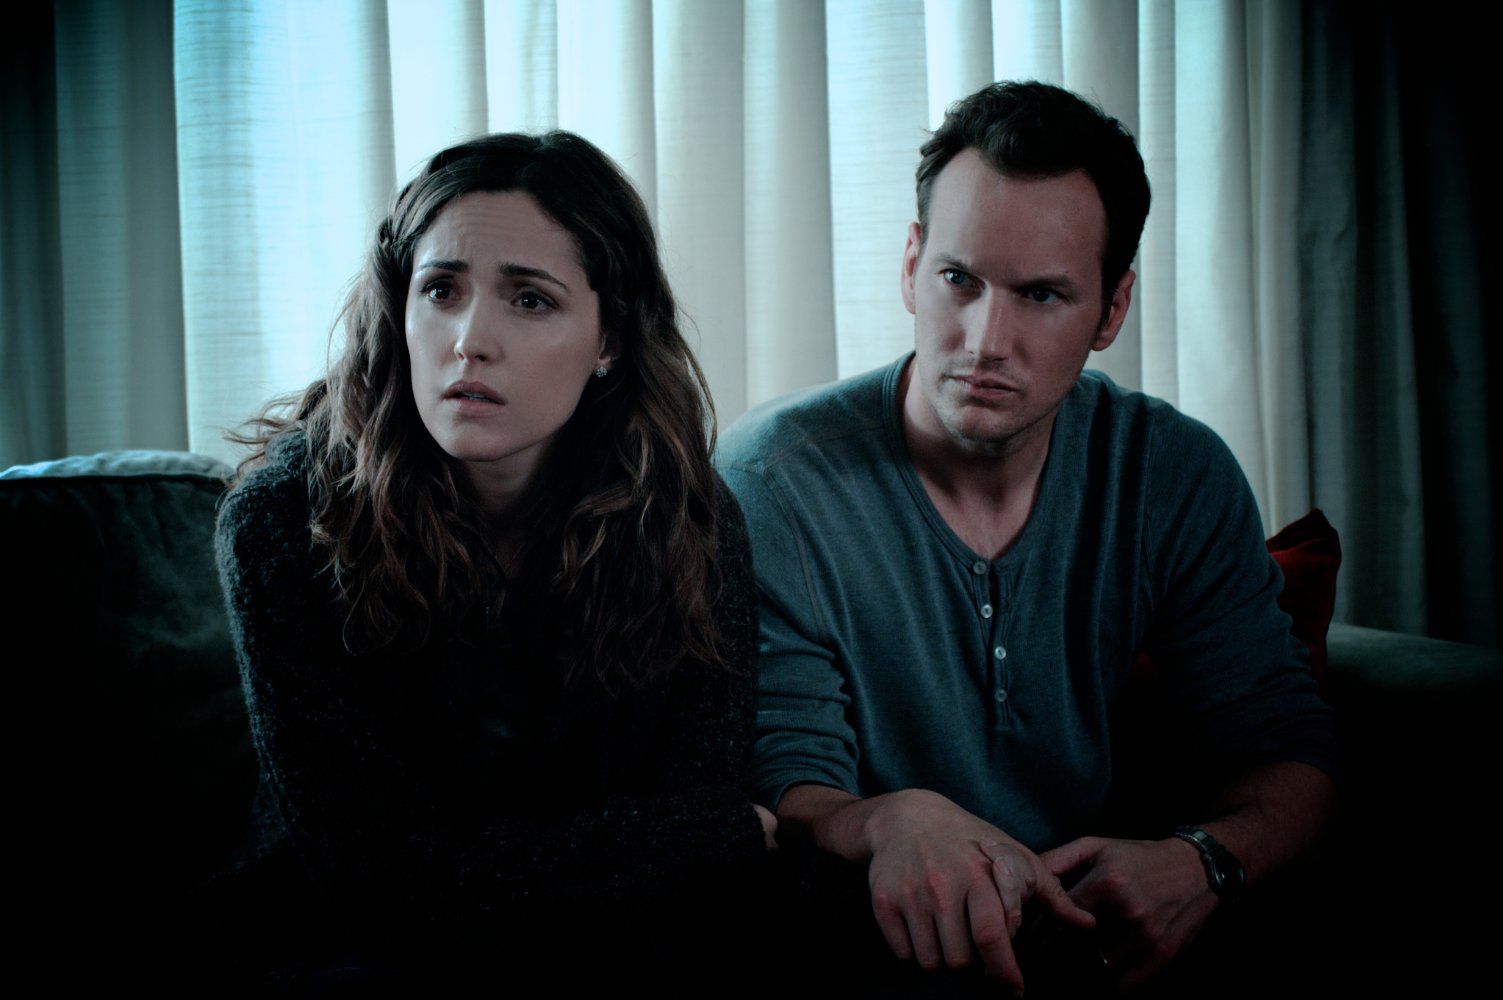 Rose Byrne and Patrick Wilson in Insidious (2010)